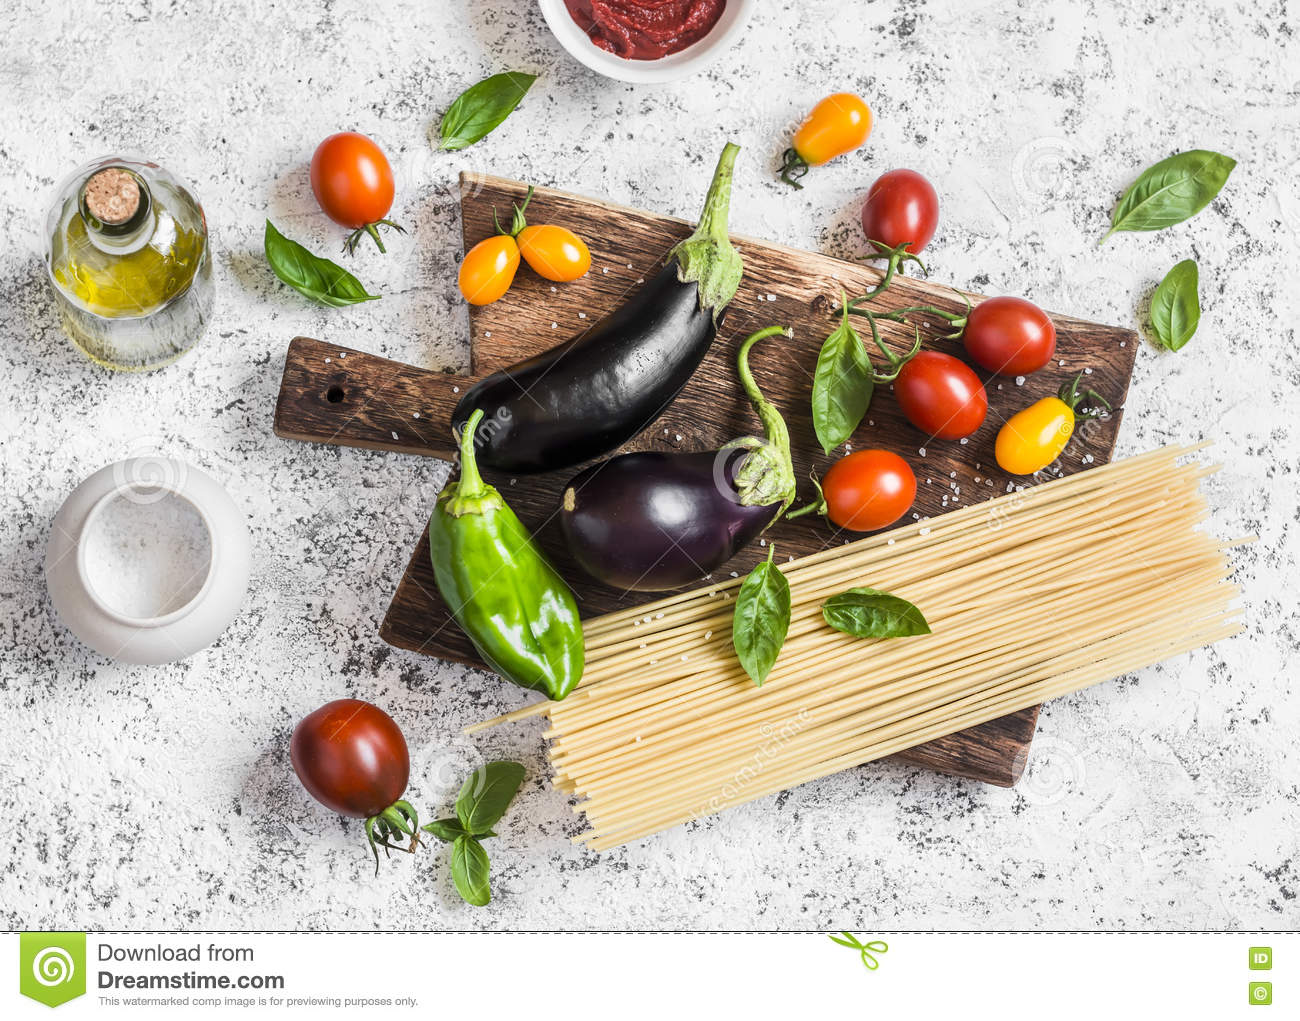 Cooking background. Raw ingredients for making pasta - spaghetti, eggplant, tomatoes, pepper, olive oil, tomato sauce and basil on